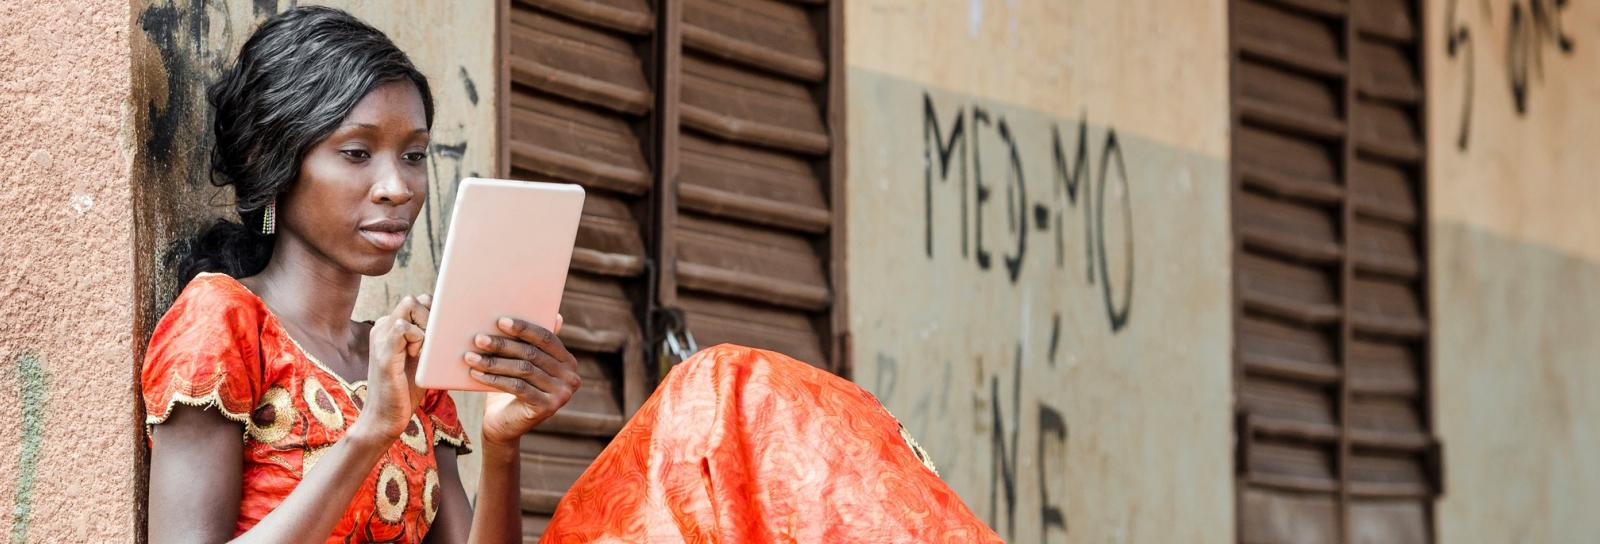 African young woman looks at electronic tablet